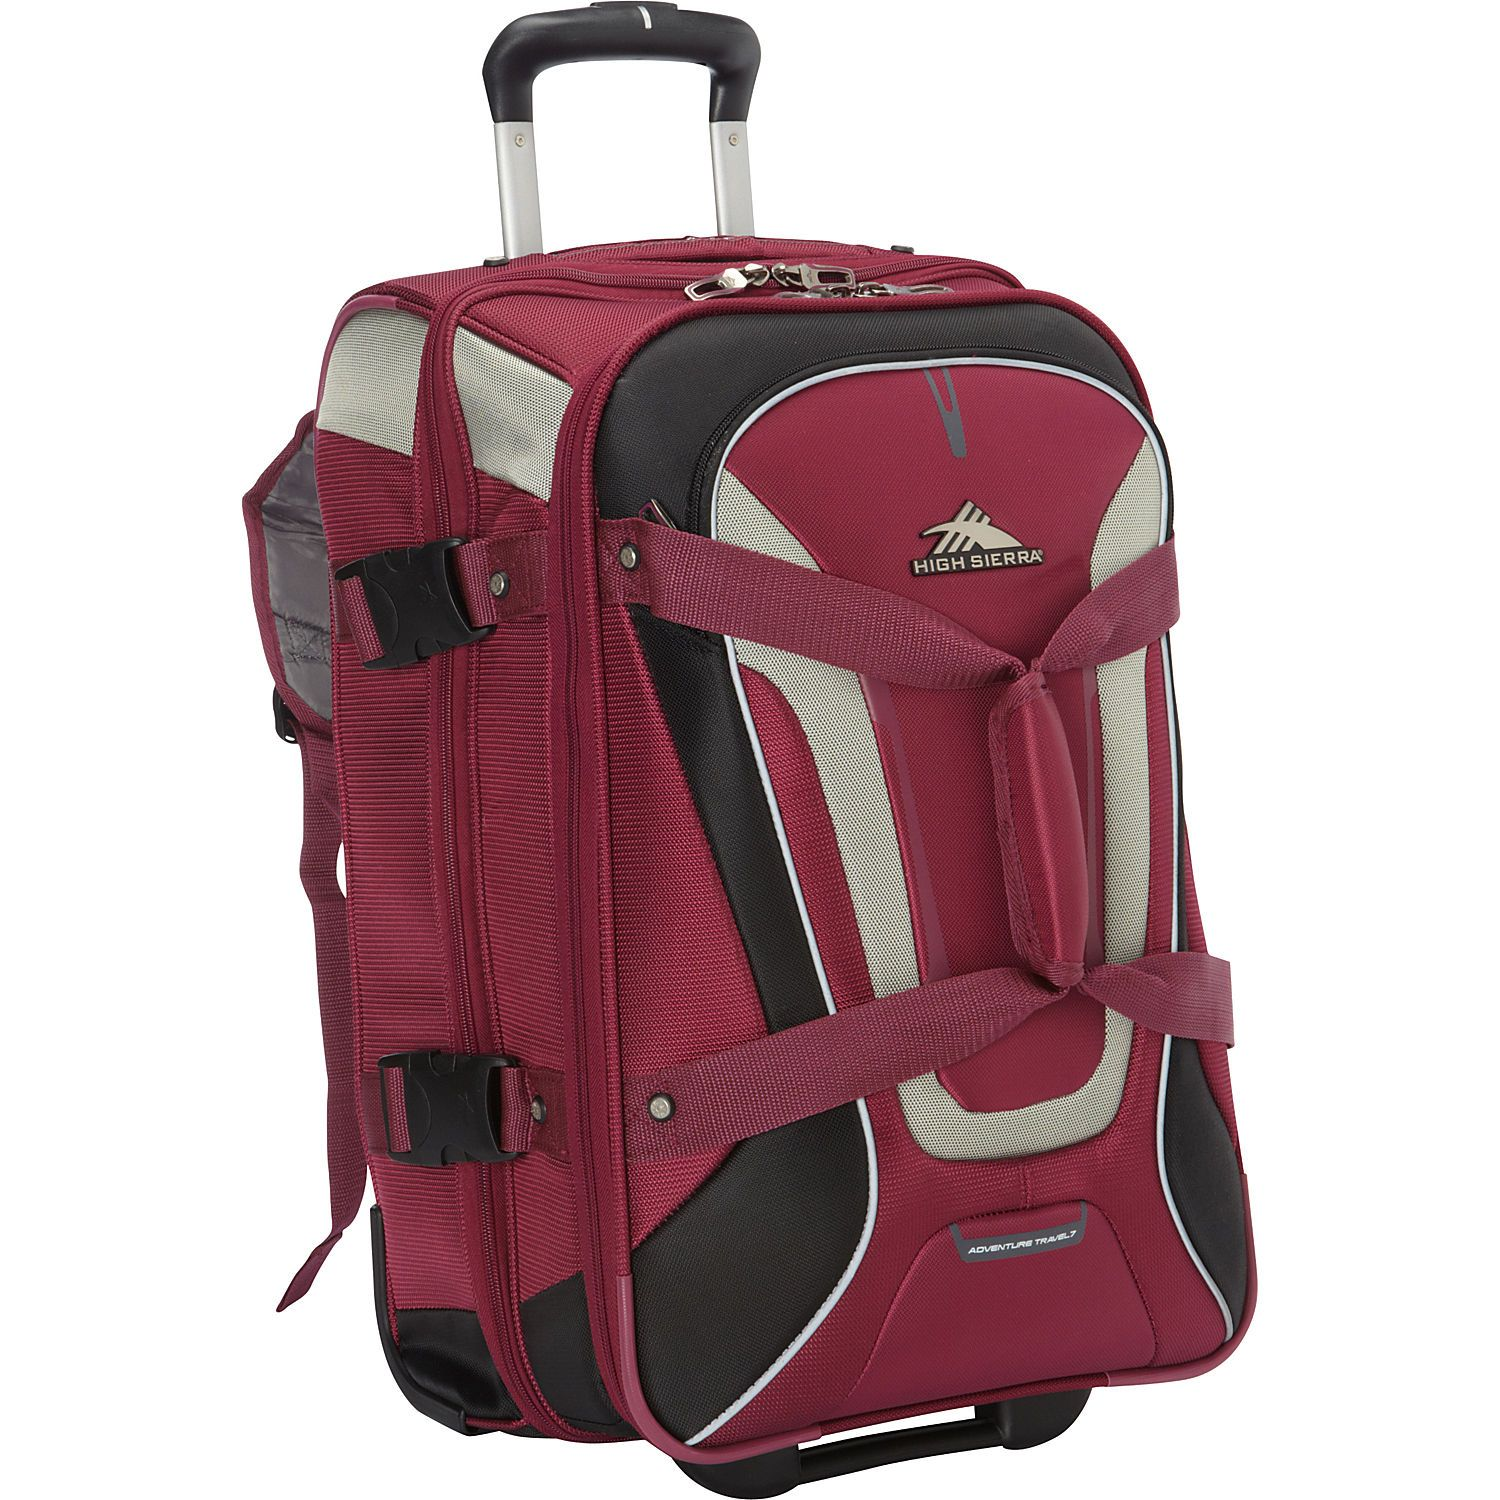 High Sierra Wheeled Duffel Backpack- Fenix Toulouse Handball 4bfebd038081f